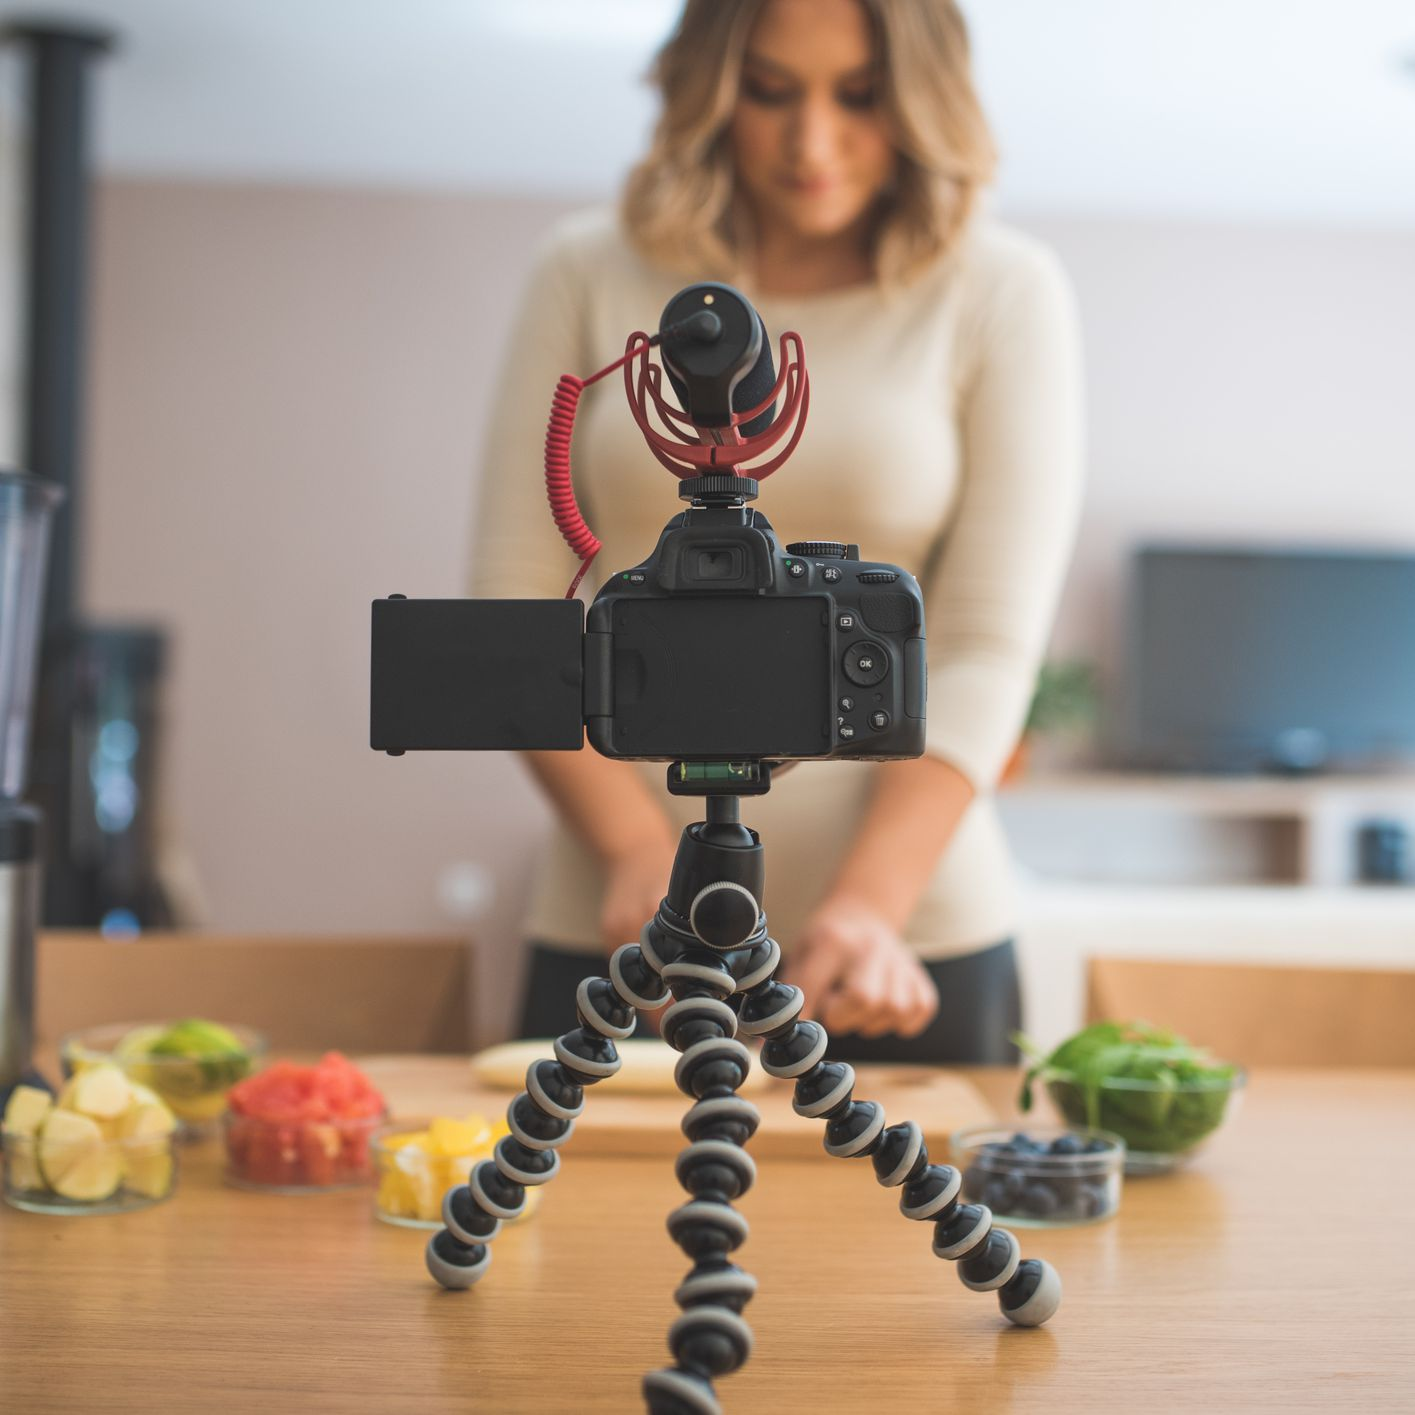 How to Build Your Home Business With Video